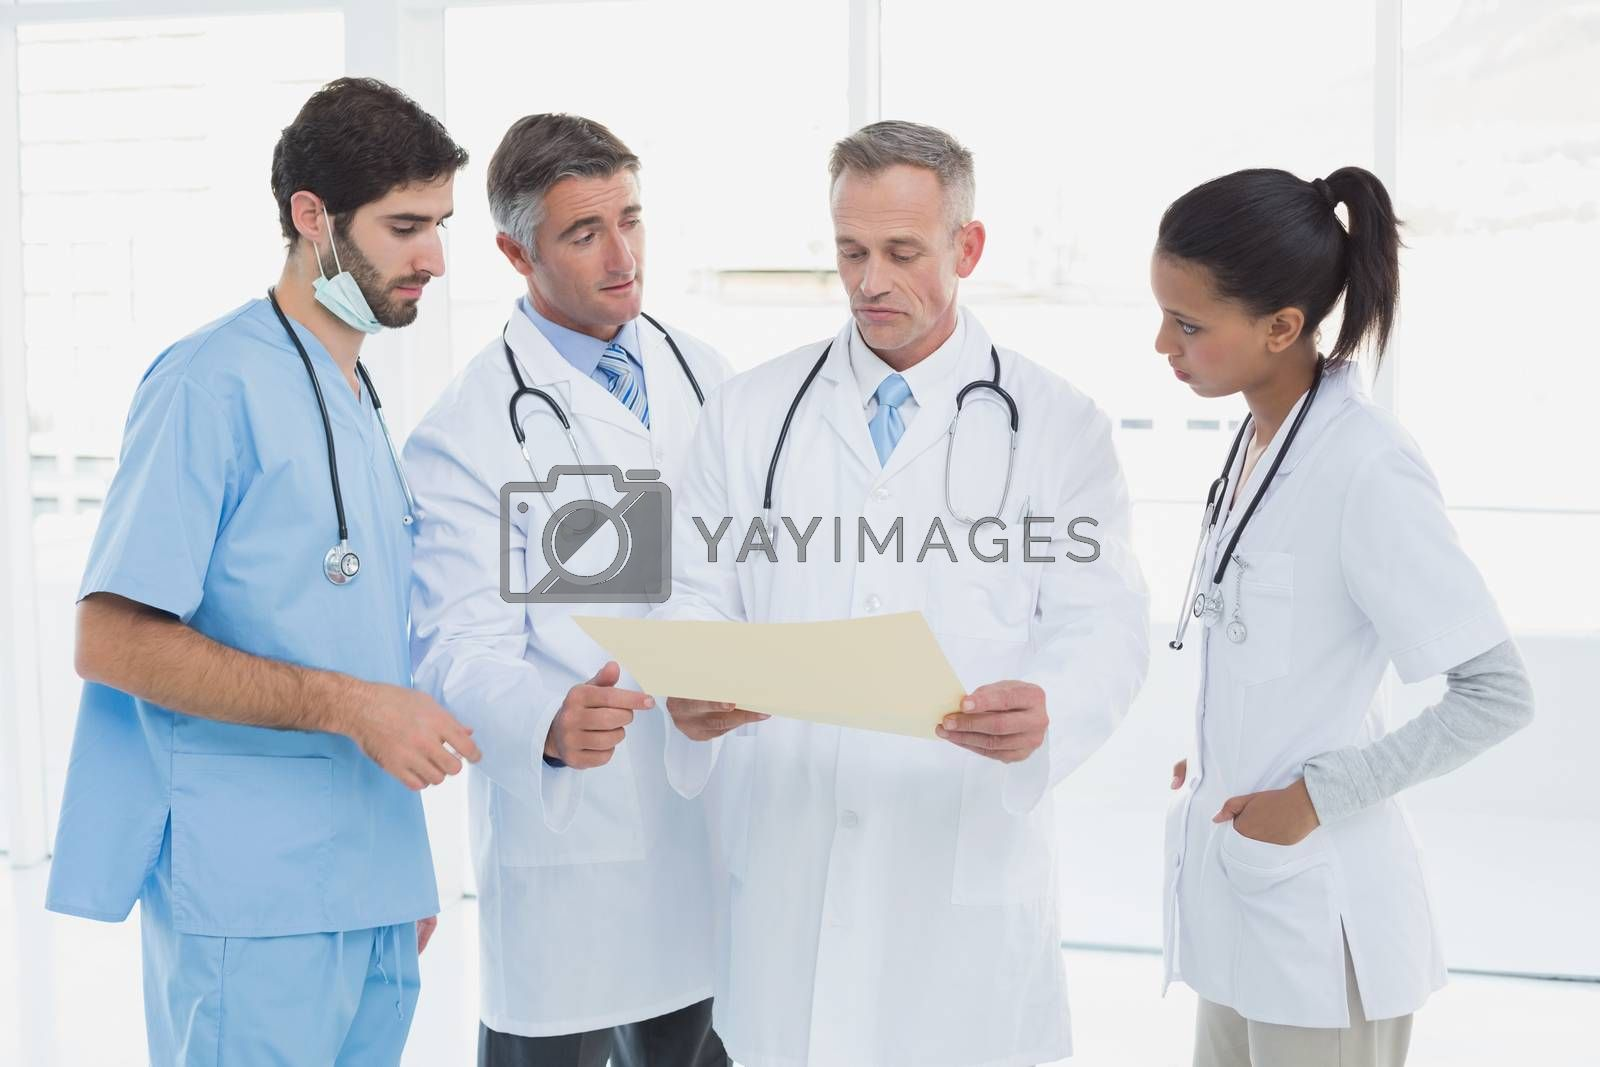 Medical team discussing some results in an office